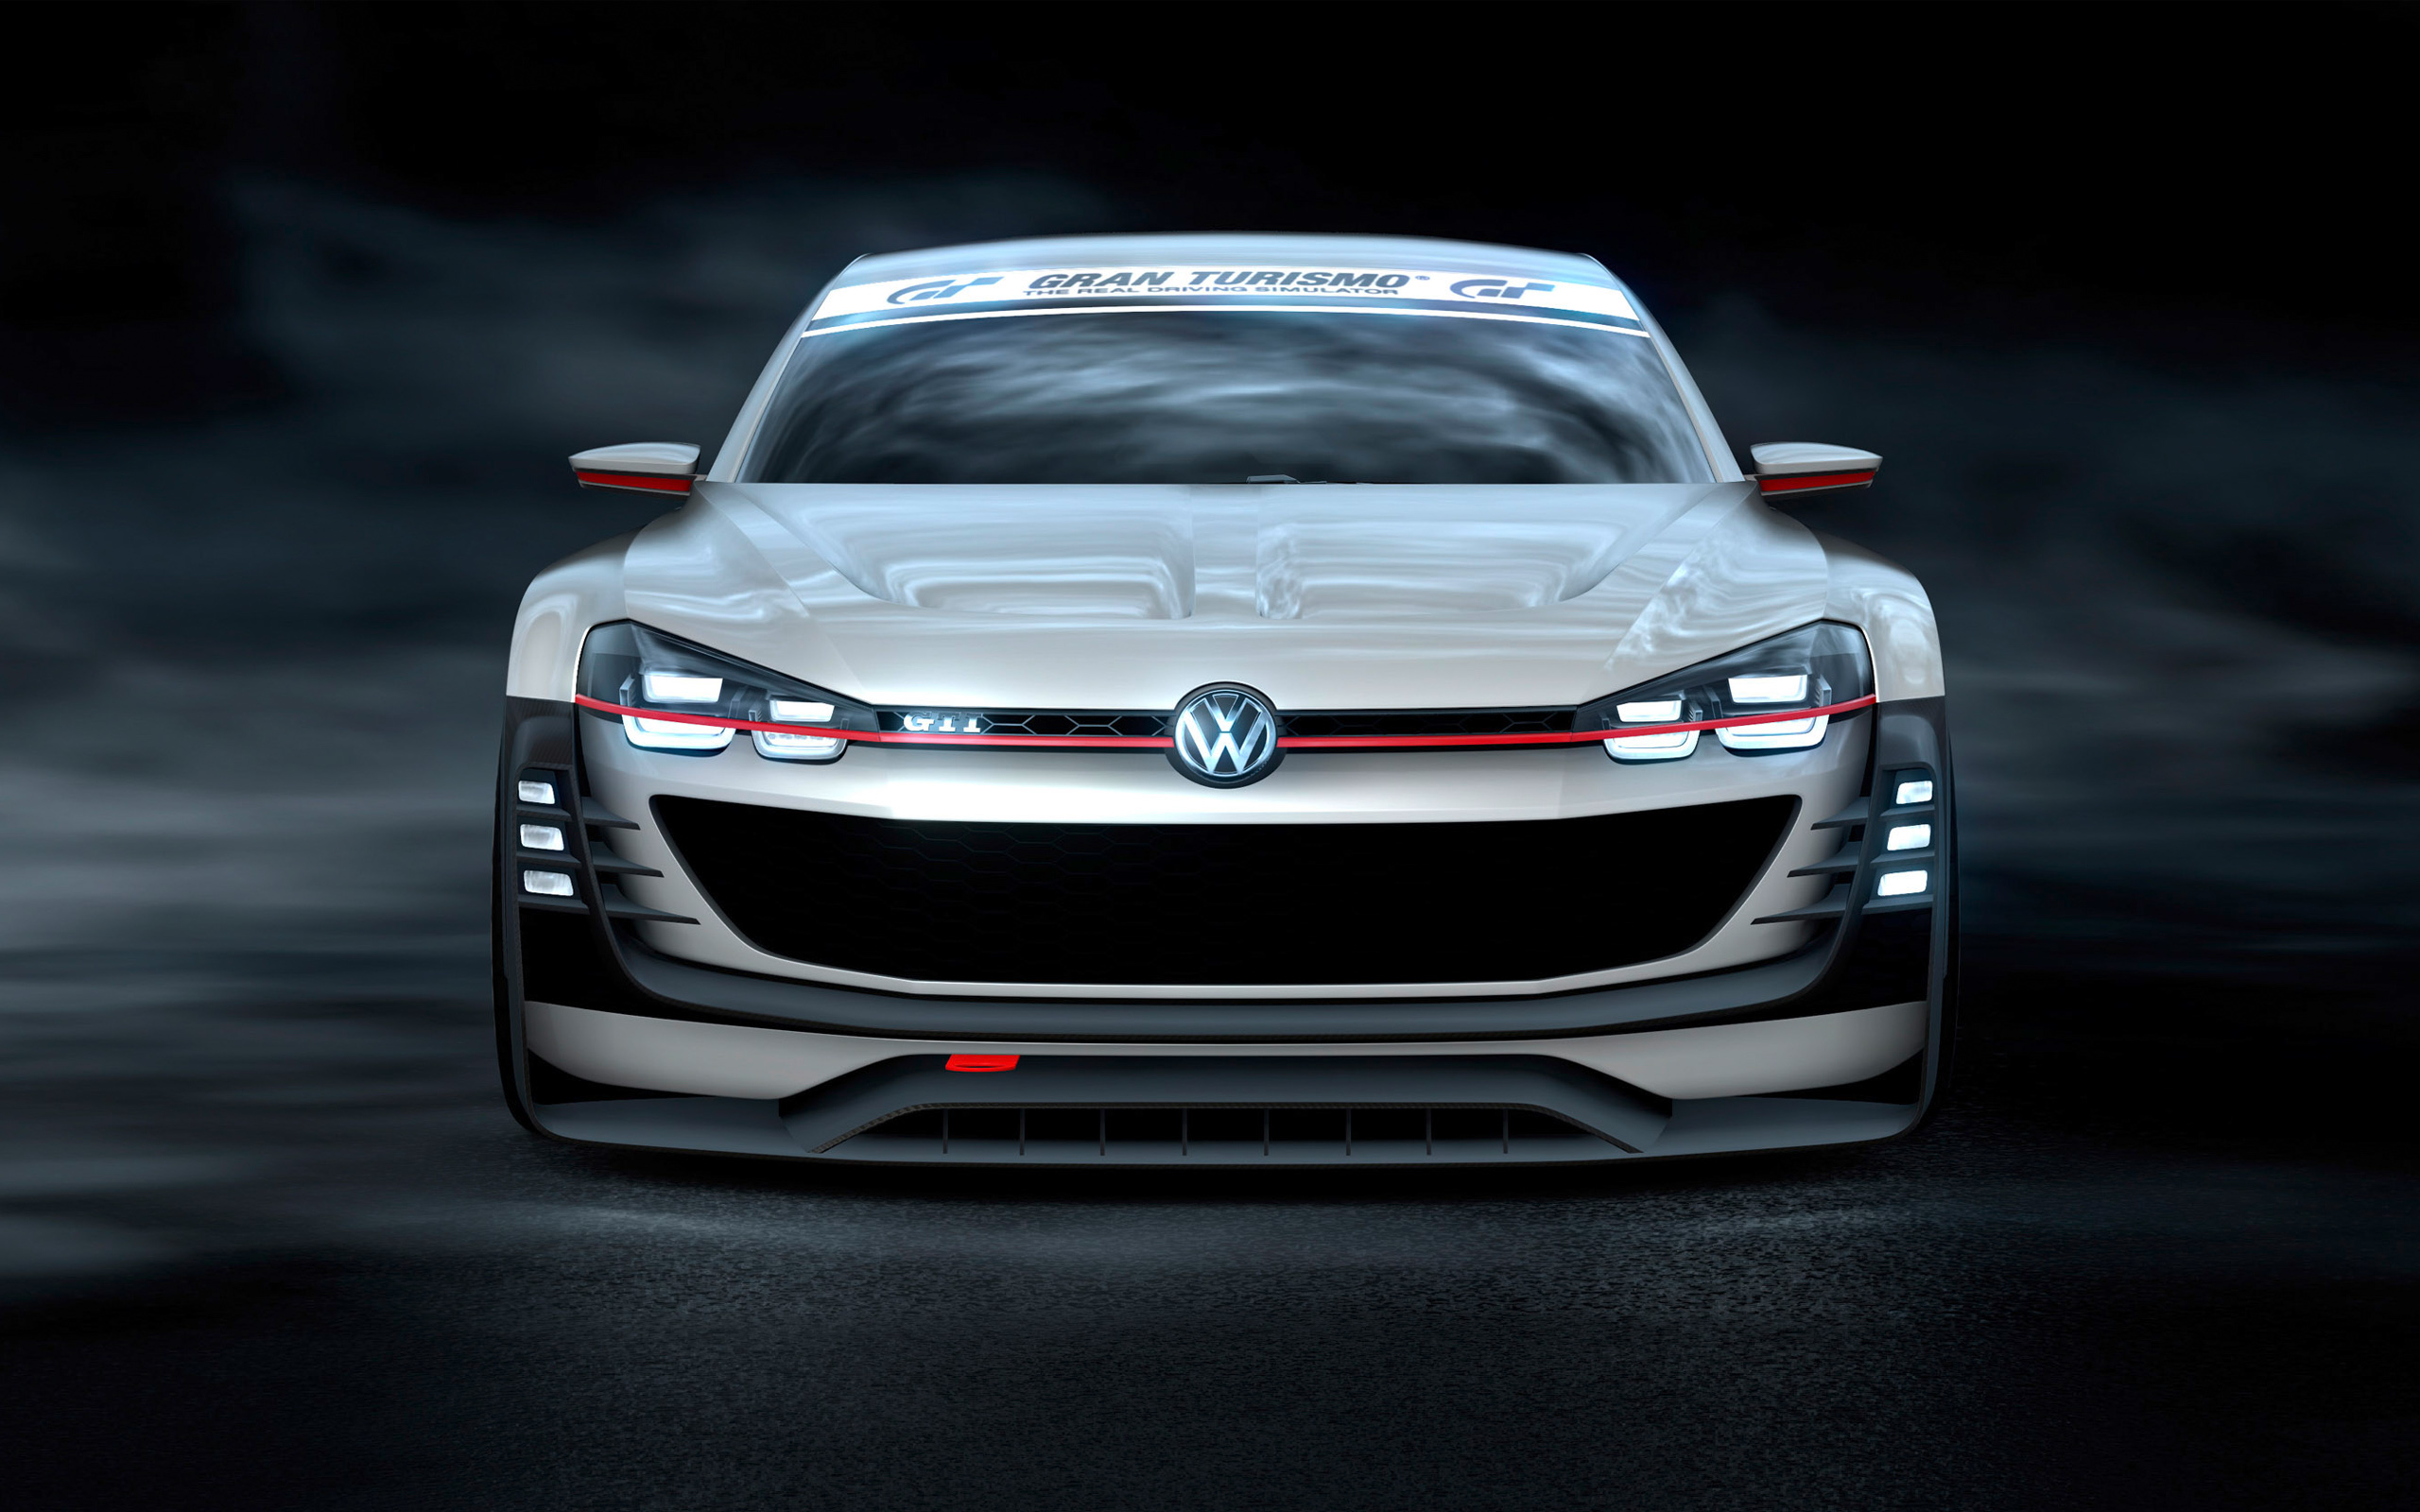 2015 volkswagen gti supersport gran turismo concept wallpaper 47097